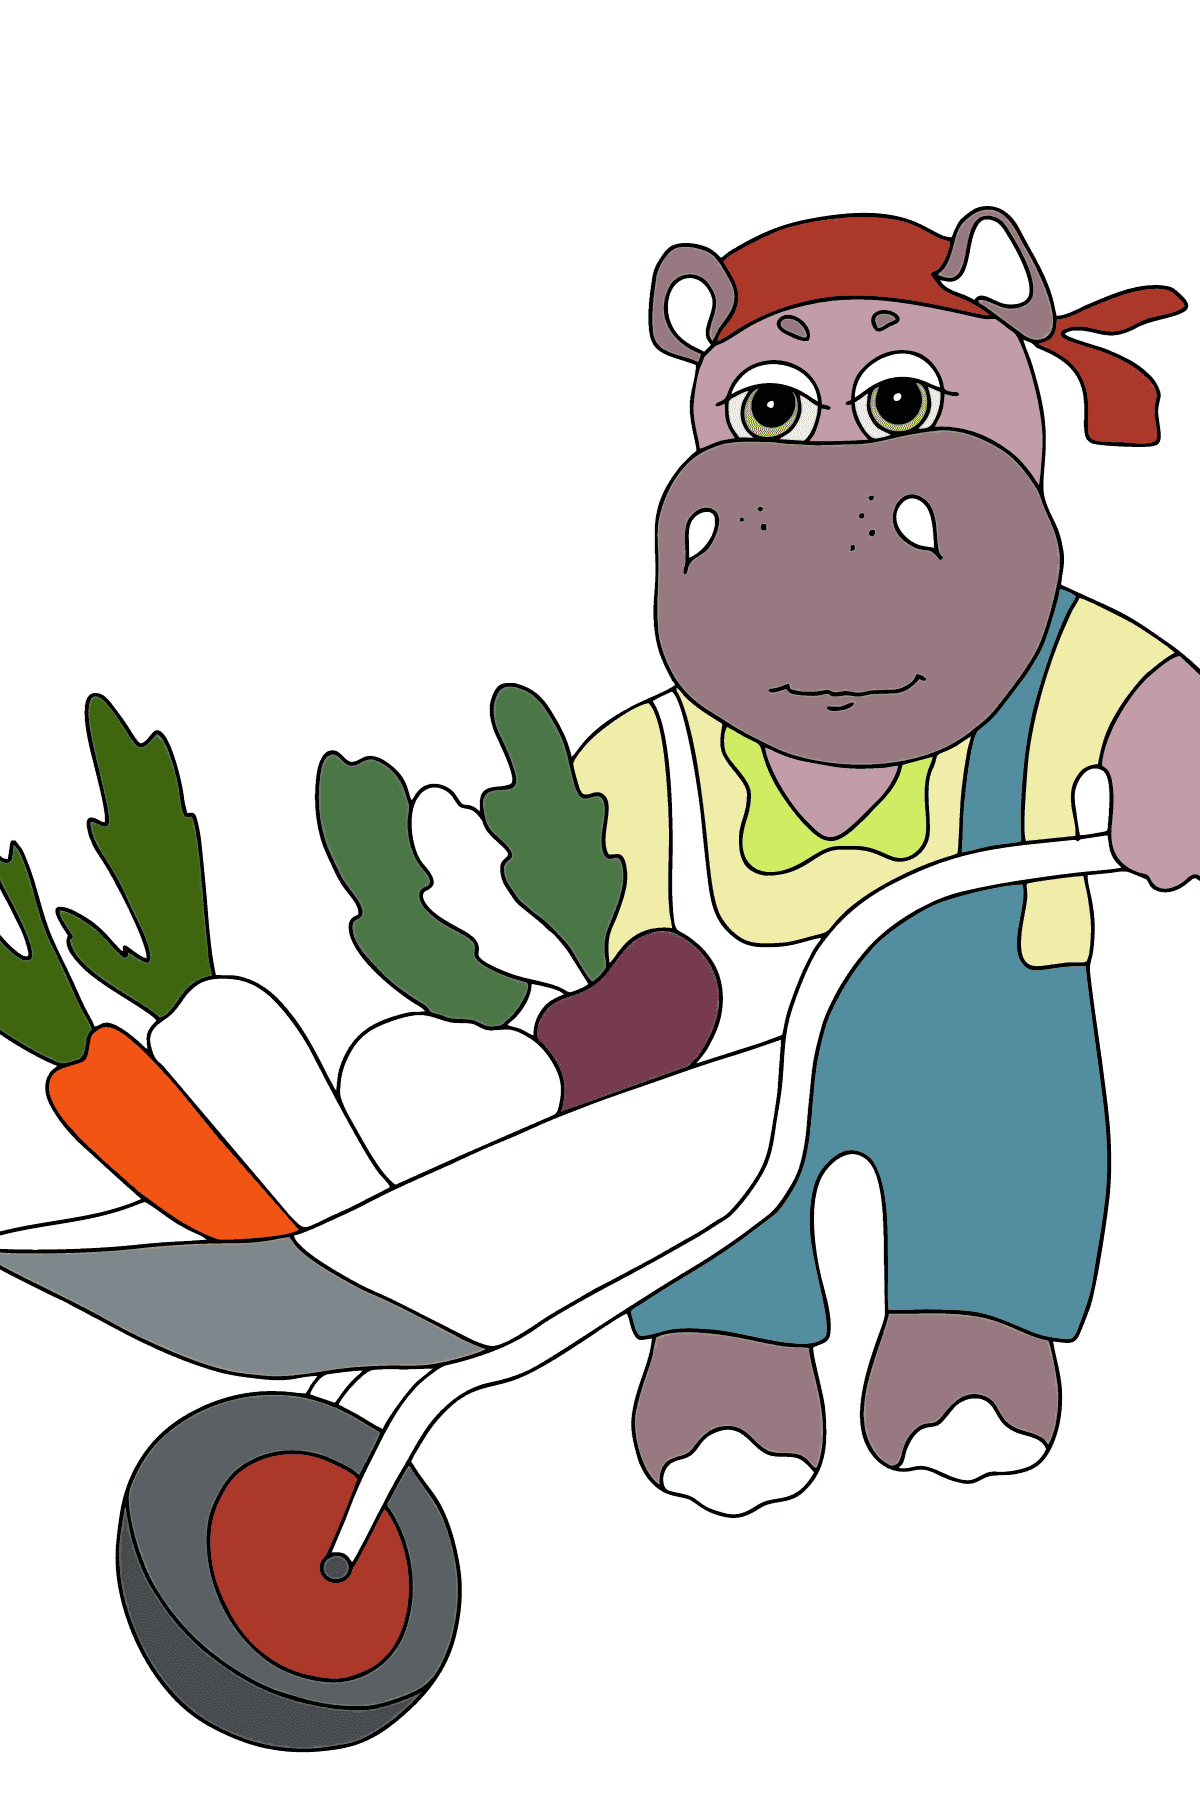 Coloring Page - A Hippo is Driving a Cart with Crops for Kids